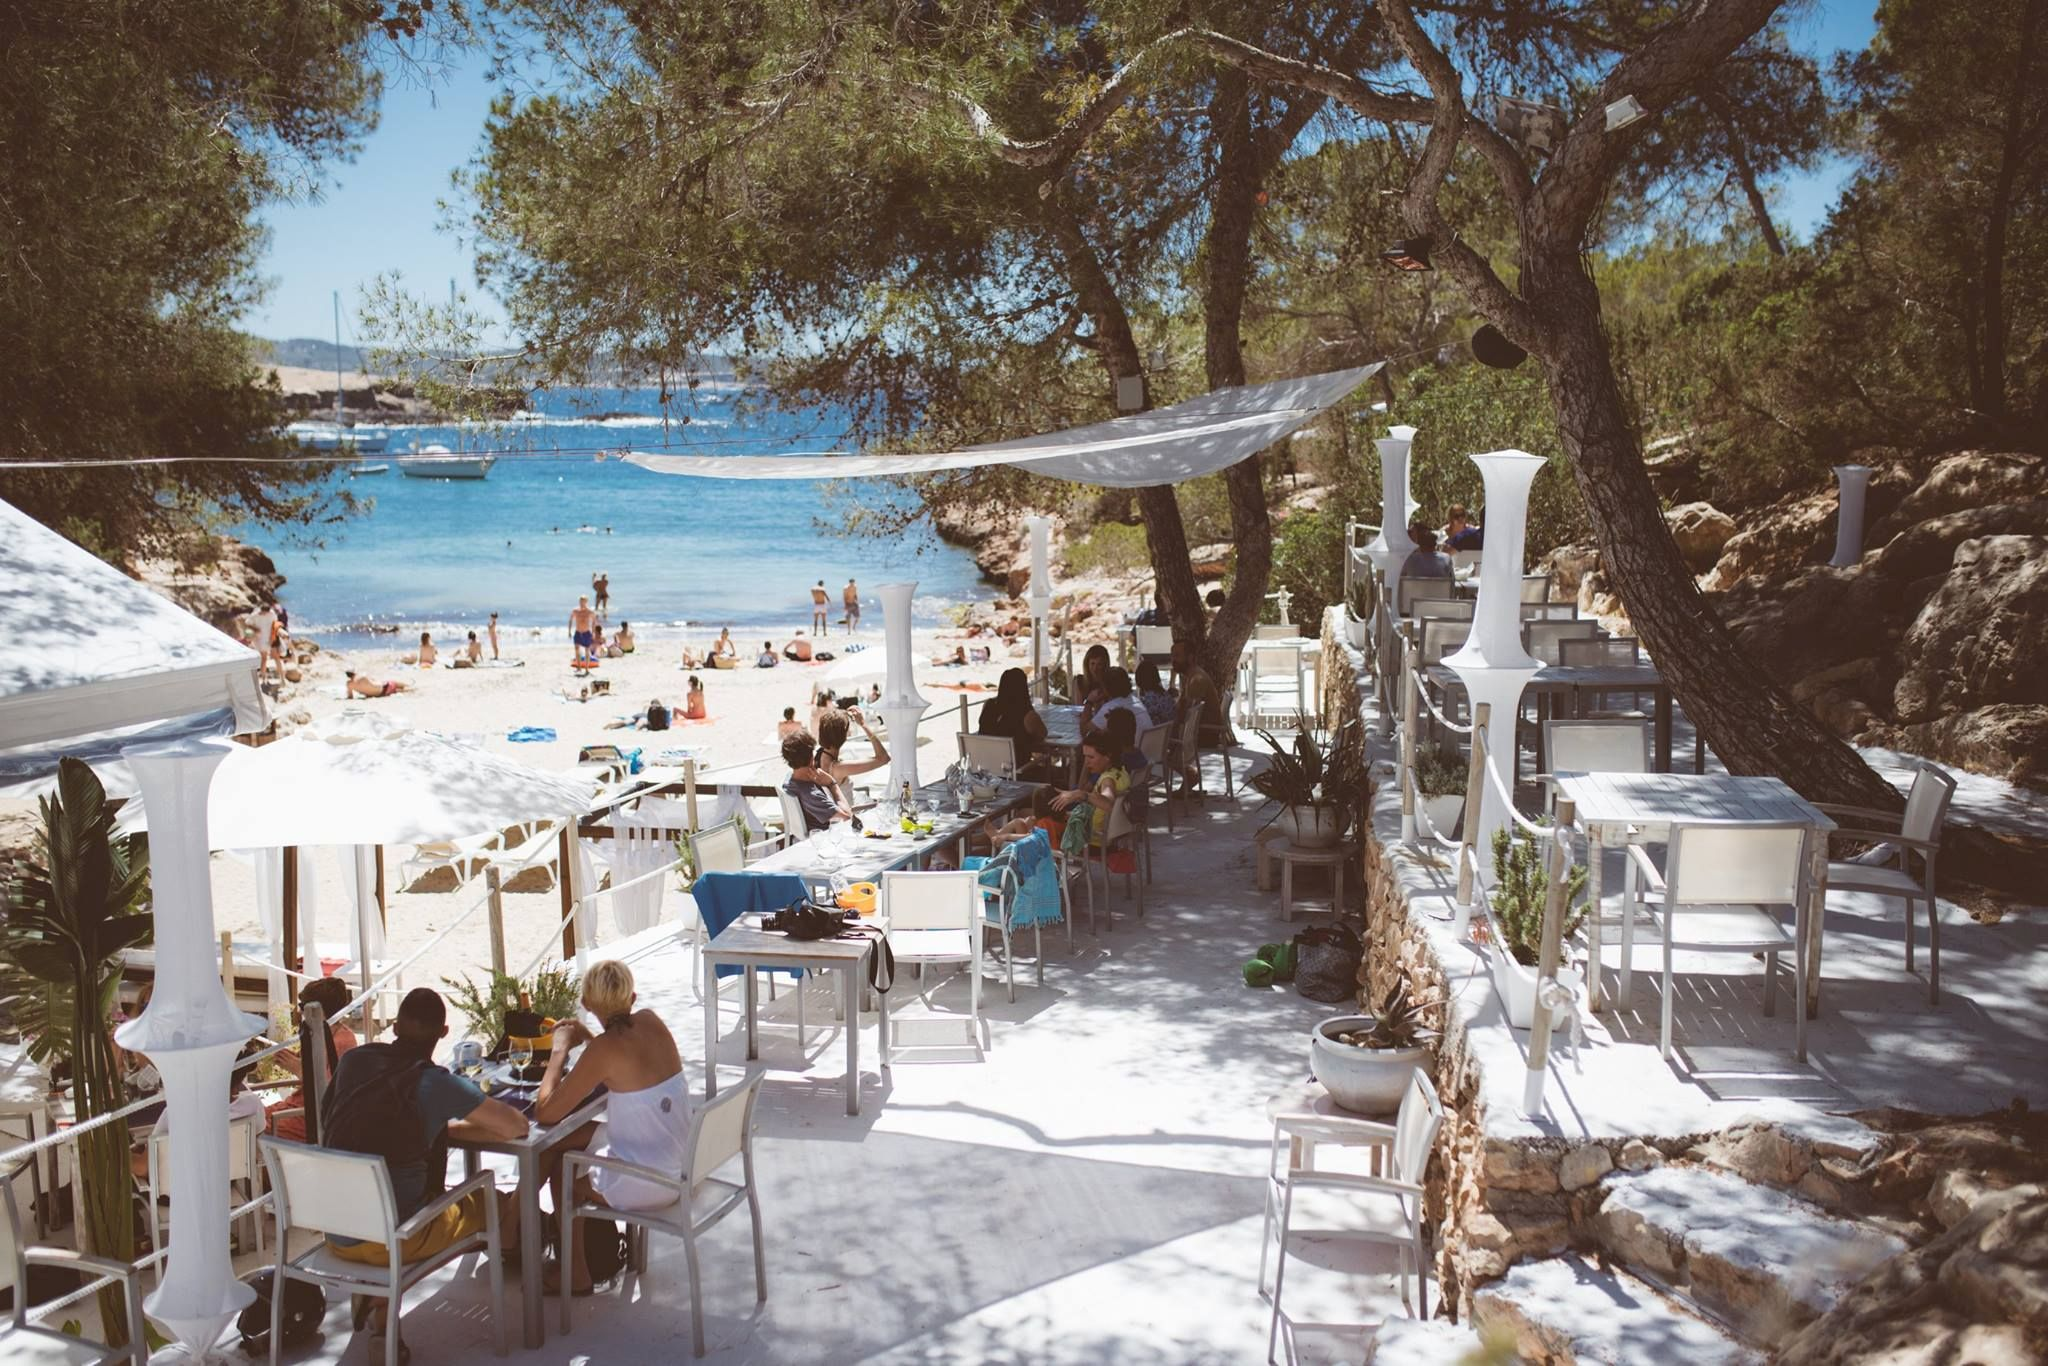 Beach restaurant at Cala Gracioneta